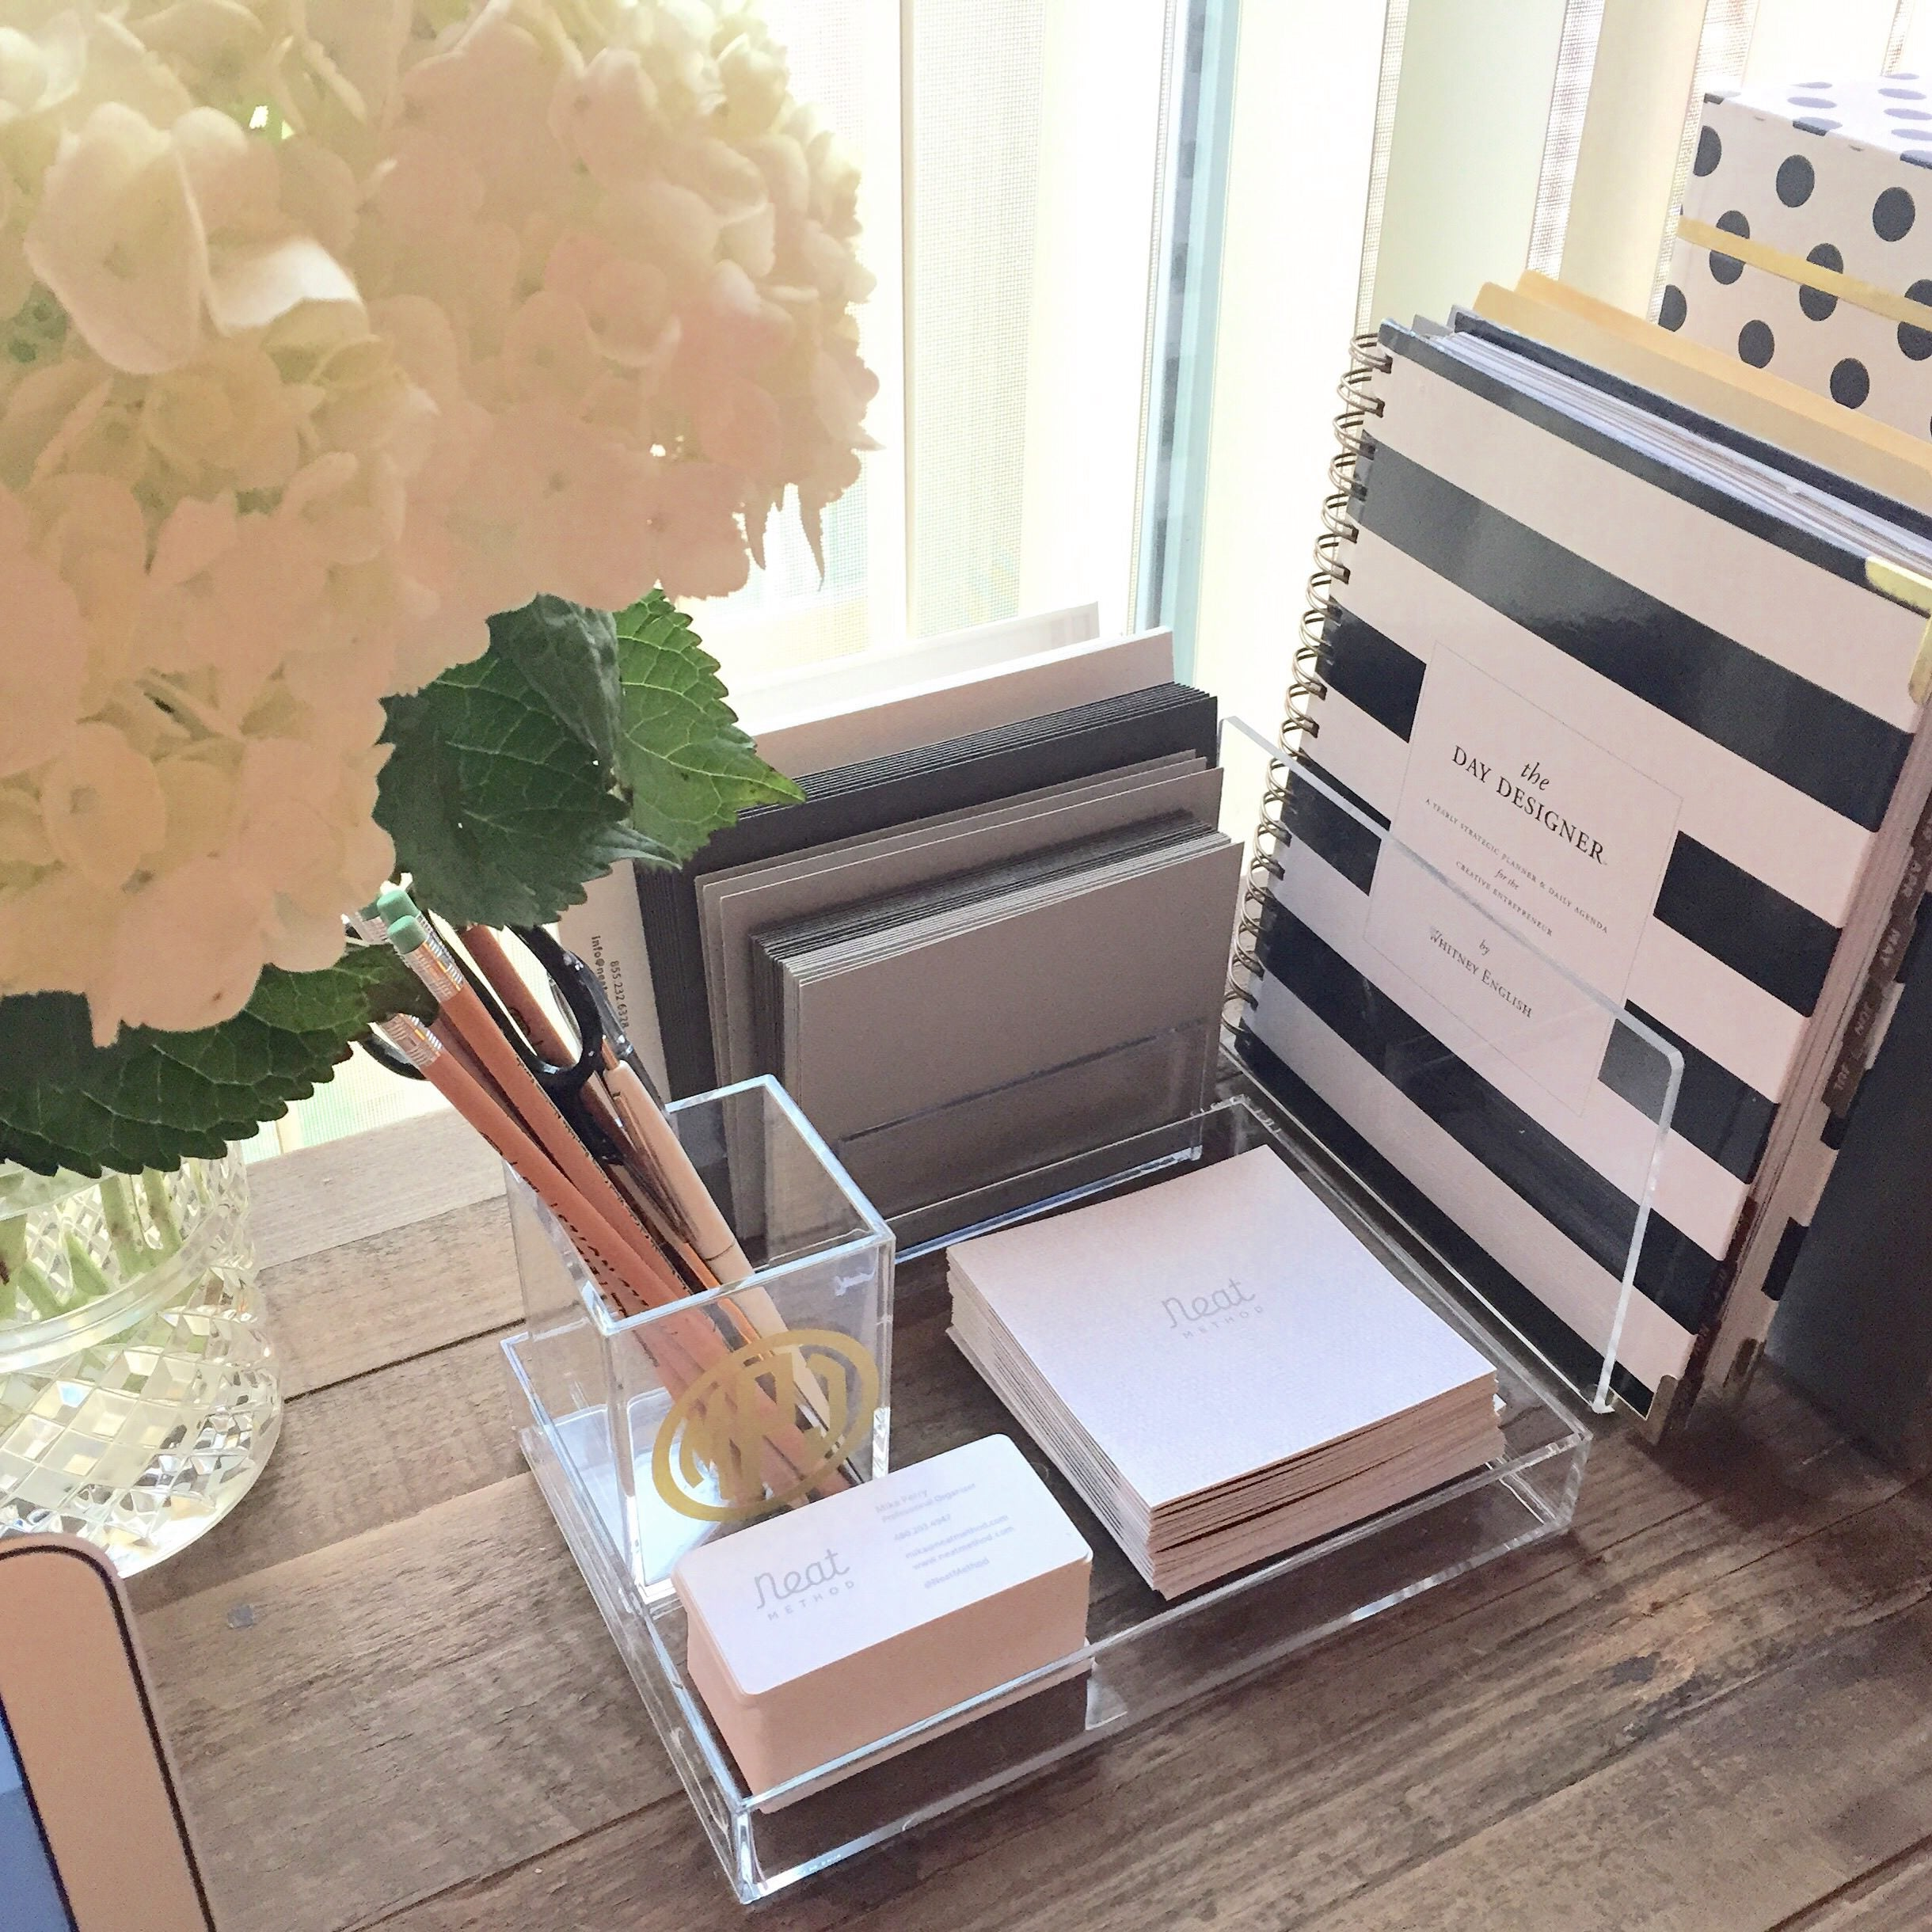 Professional organizer, Scottsdale, professional organizer scottsdale, home organization, Mika Perry, luxury residences, residential organization, home workspace, home office, home style, home design